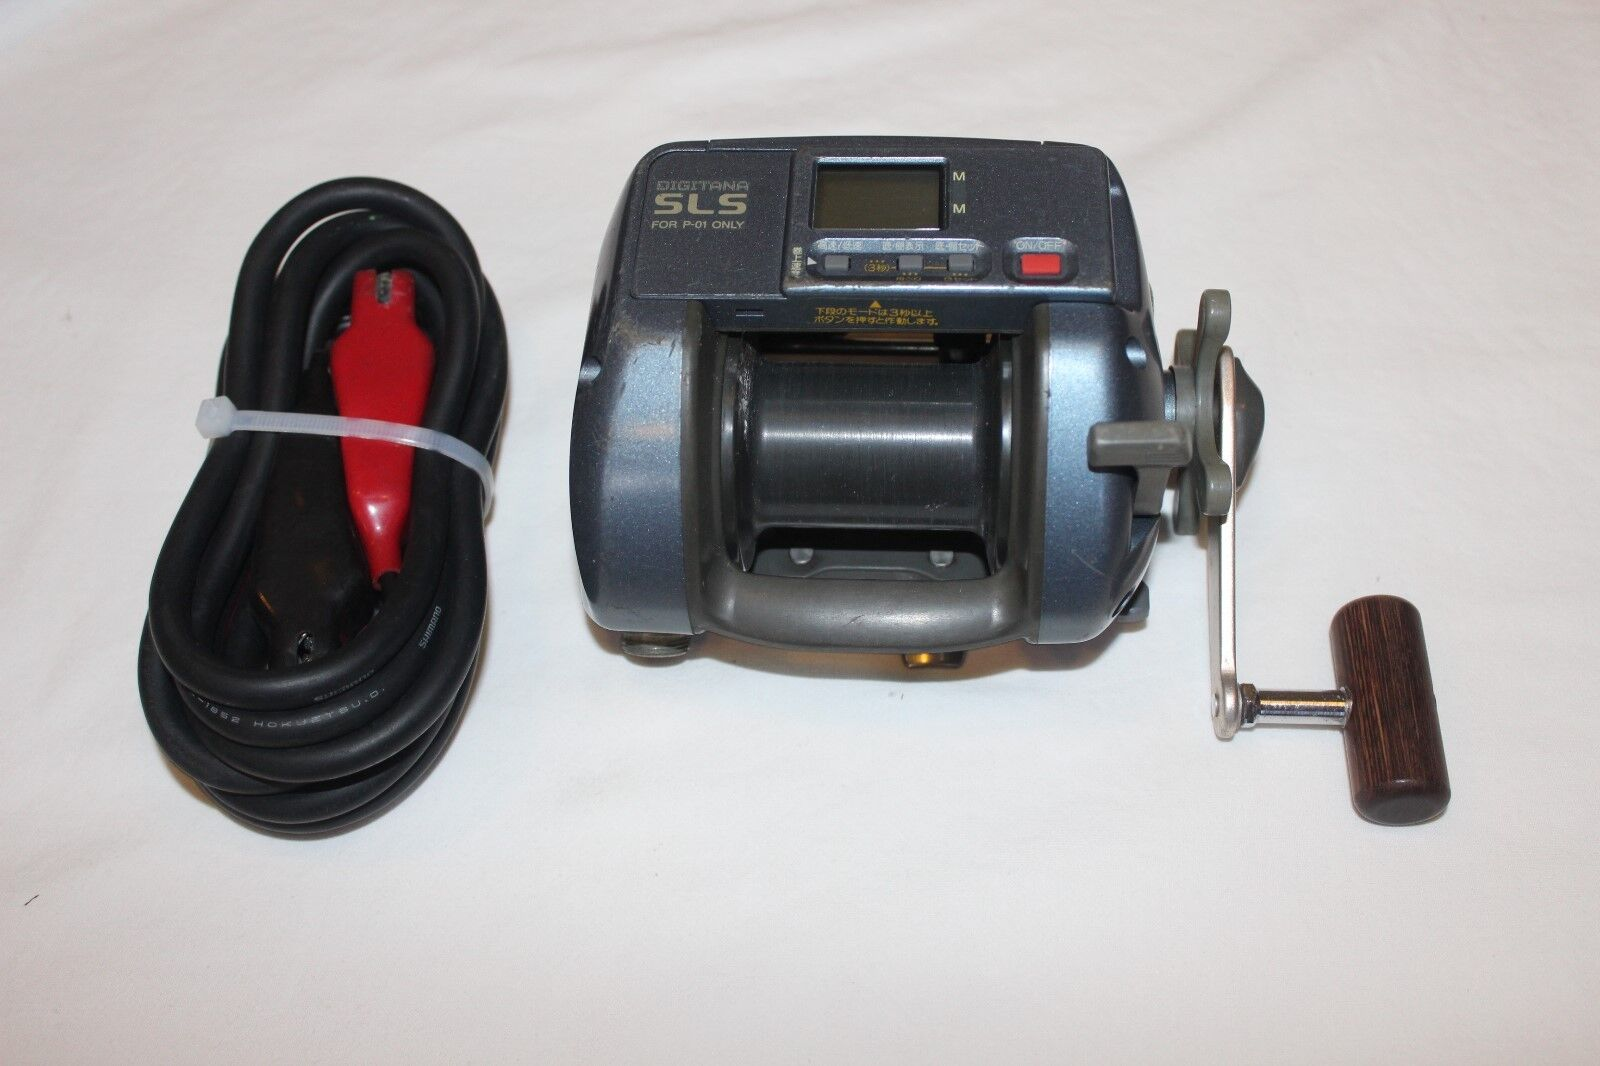 SHIMANO DENDOU-MARU 3000 EV-ELEKTRGoldLLE-MADE IN JAPAN-Nr-878